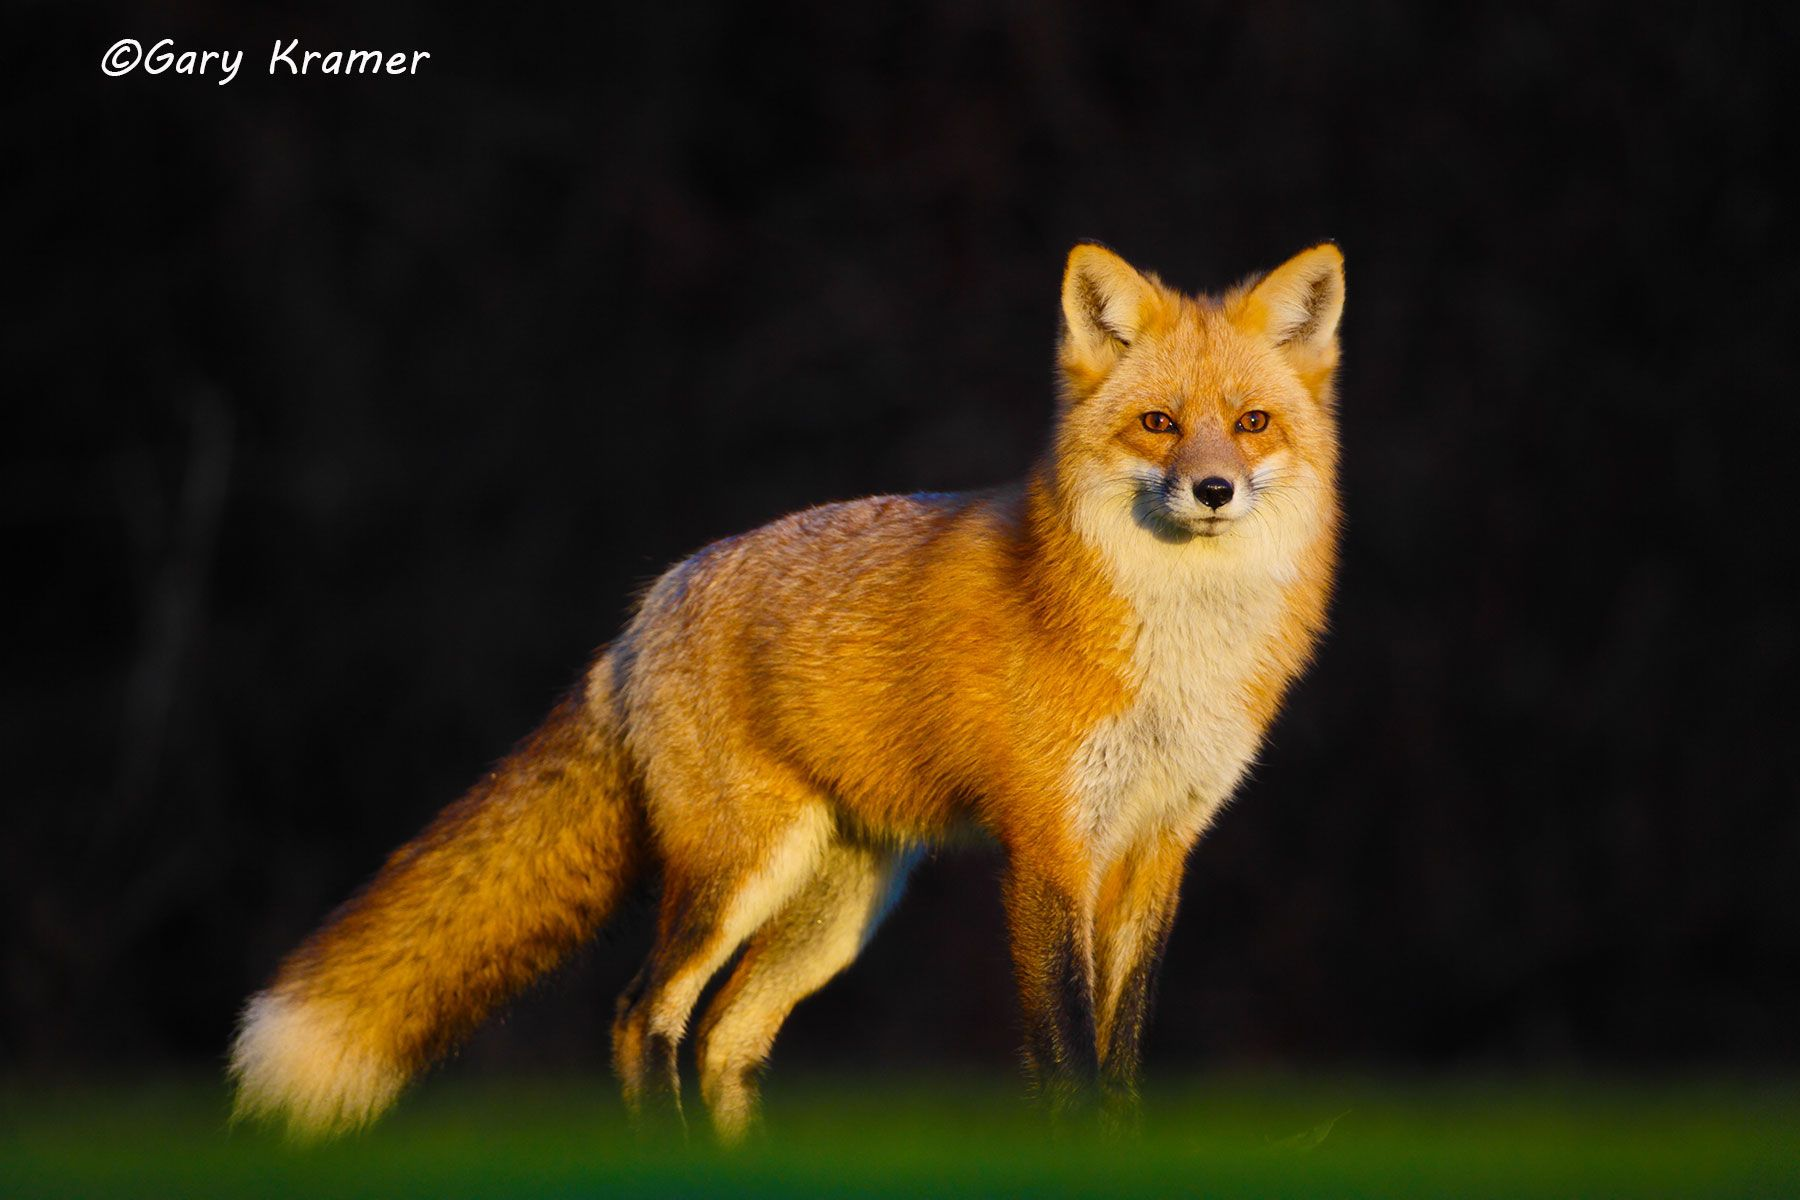 Red Fox (Vulpes fulva) - NMFr#672d